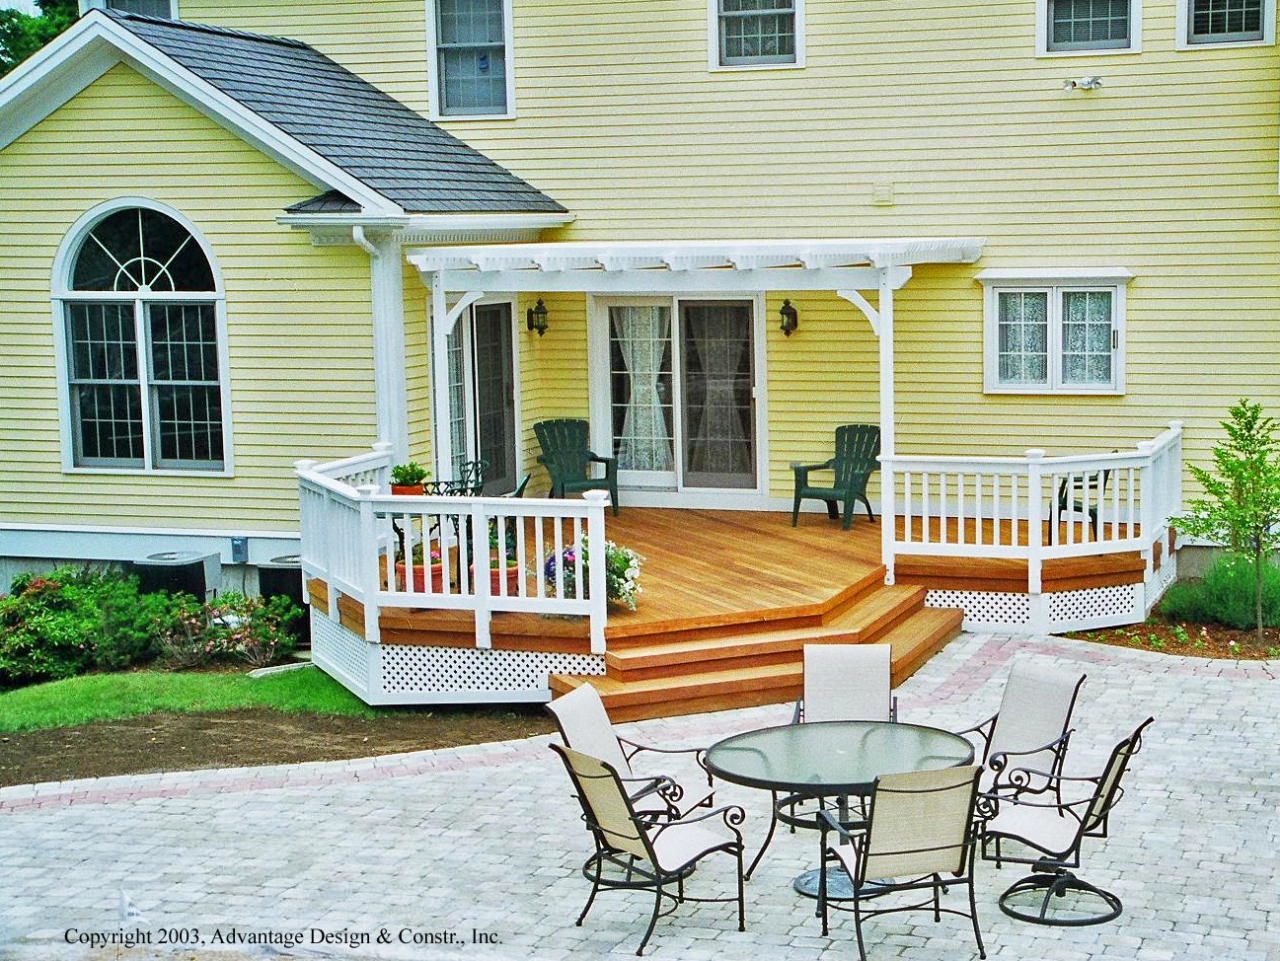 choosing a deck or a patio suburban boston decks and porches blog - Deck Vs Patio